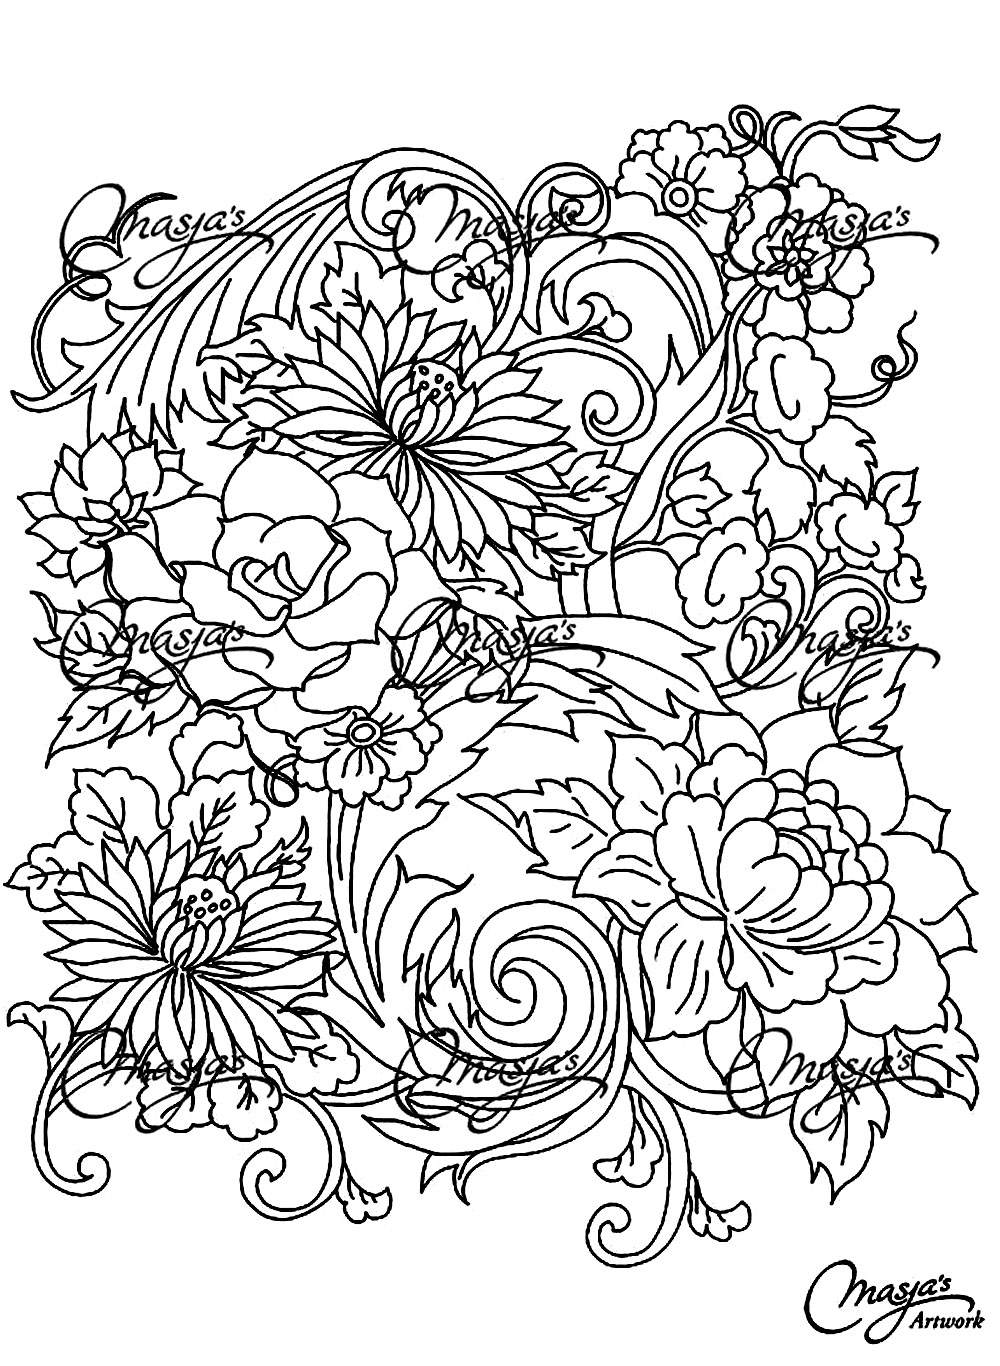 Drawing flower - Flowers Adult Coloring Pages - Page 4 | coloring sheets for adults flowers